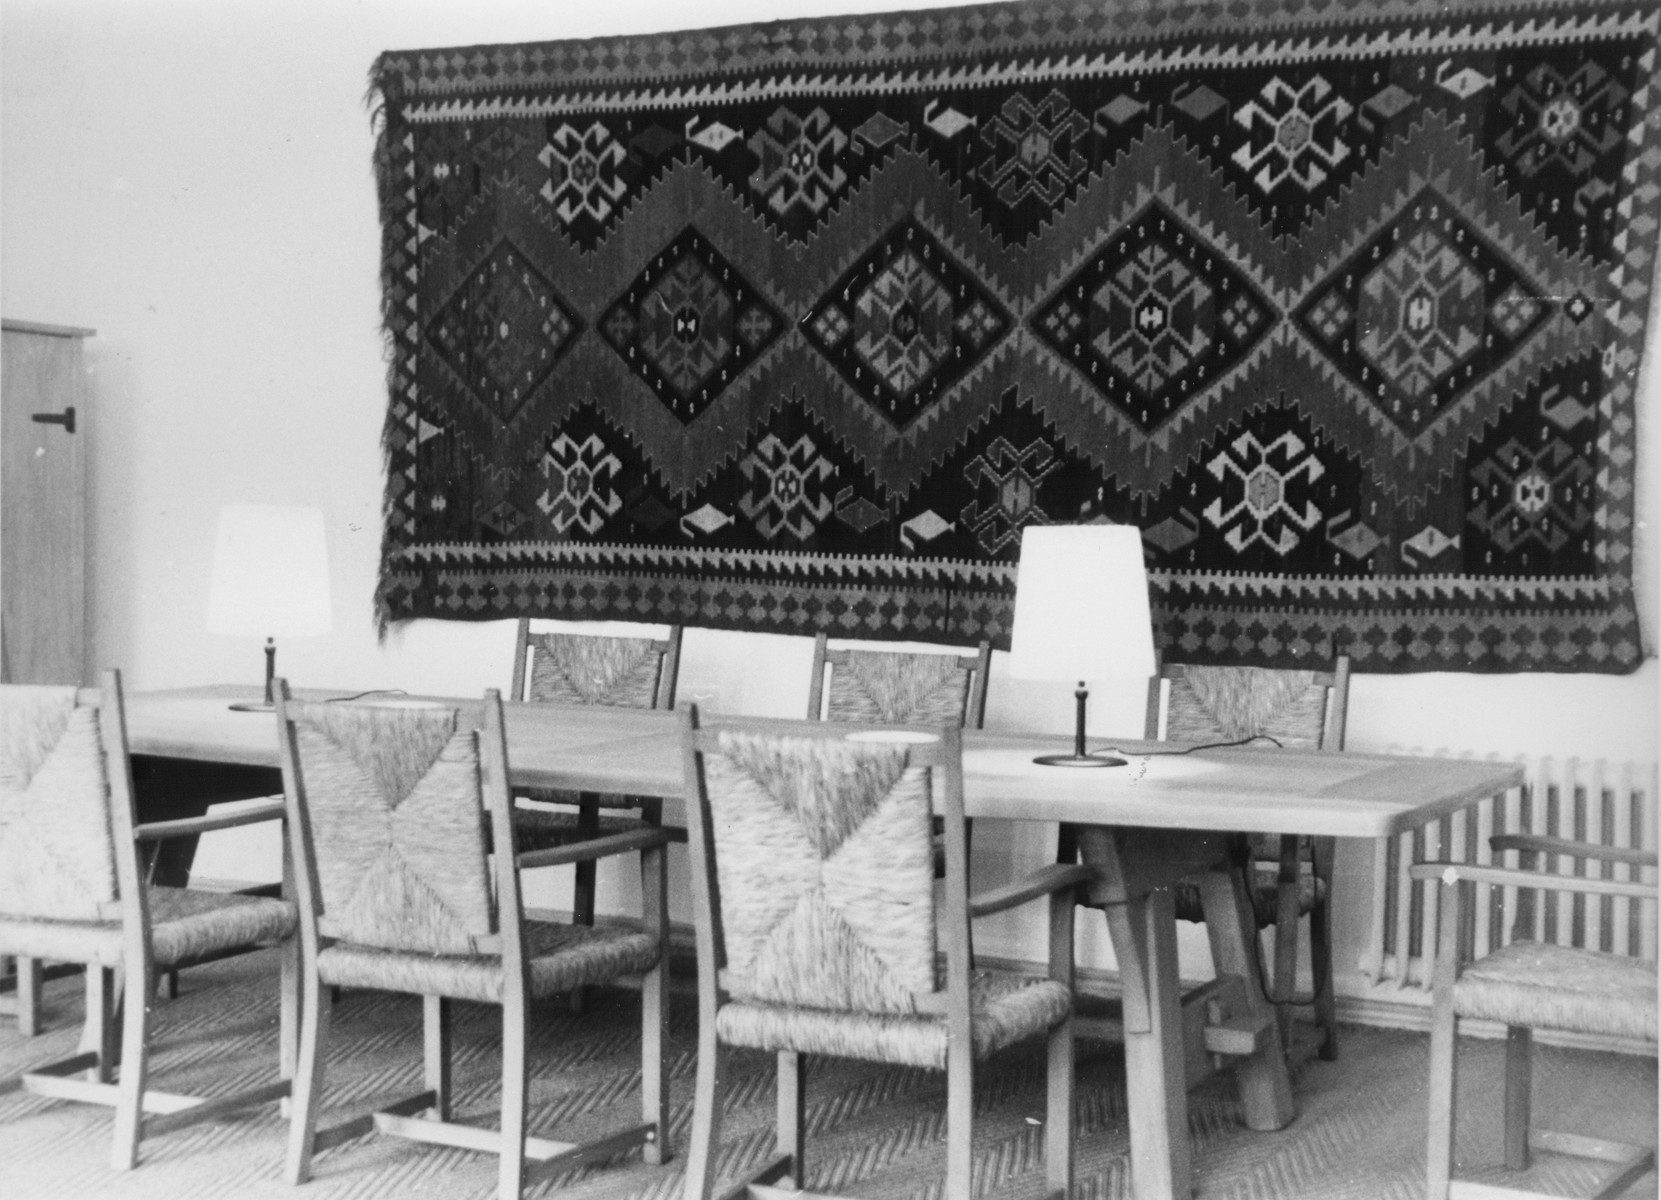 View of Himmler's study at SS headquarters in the Hegewald bei Zhitomir compound.